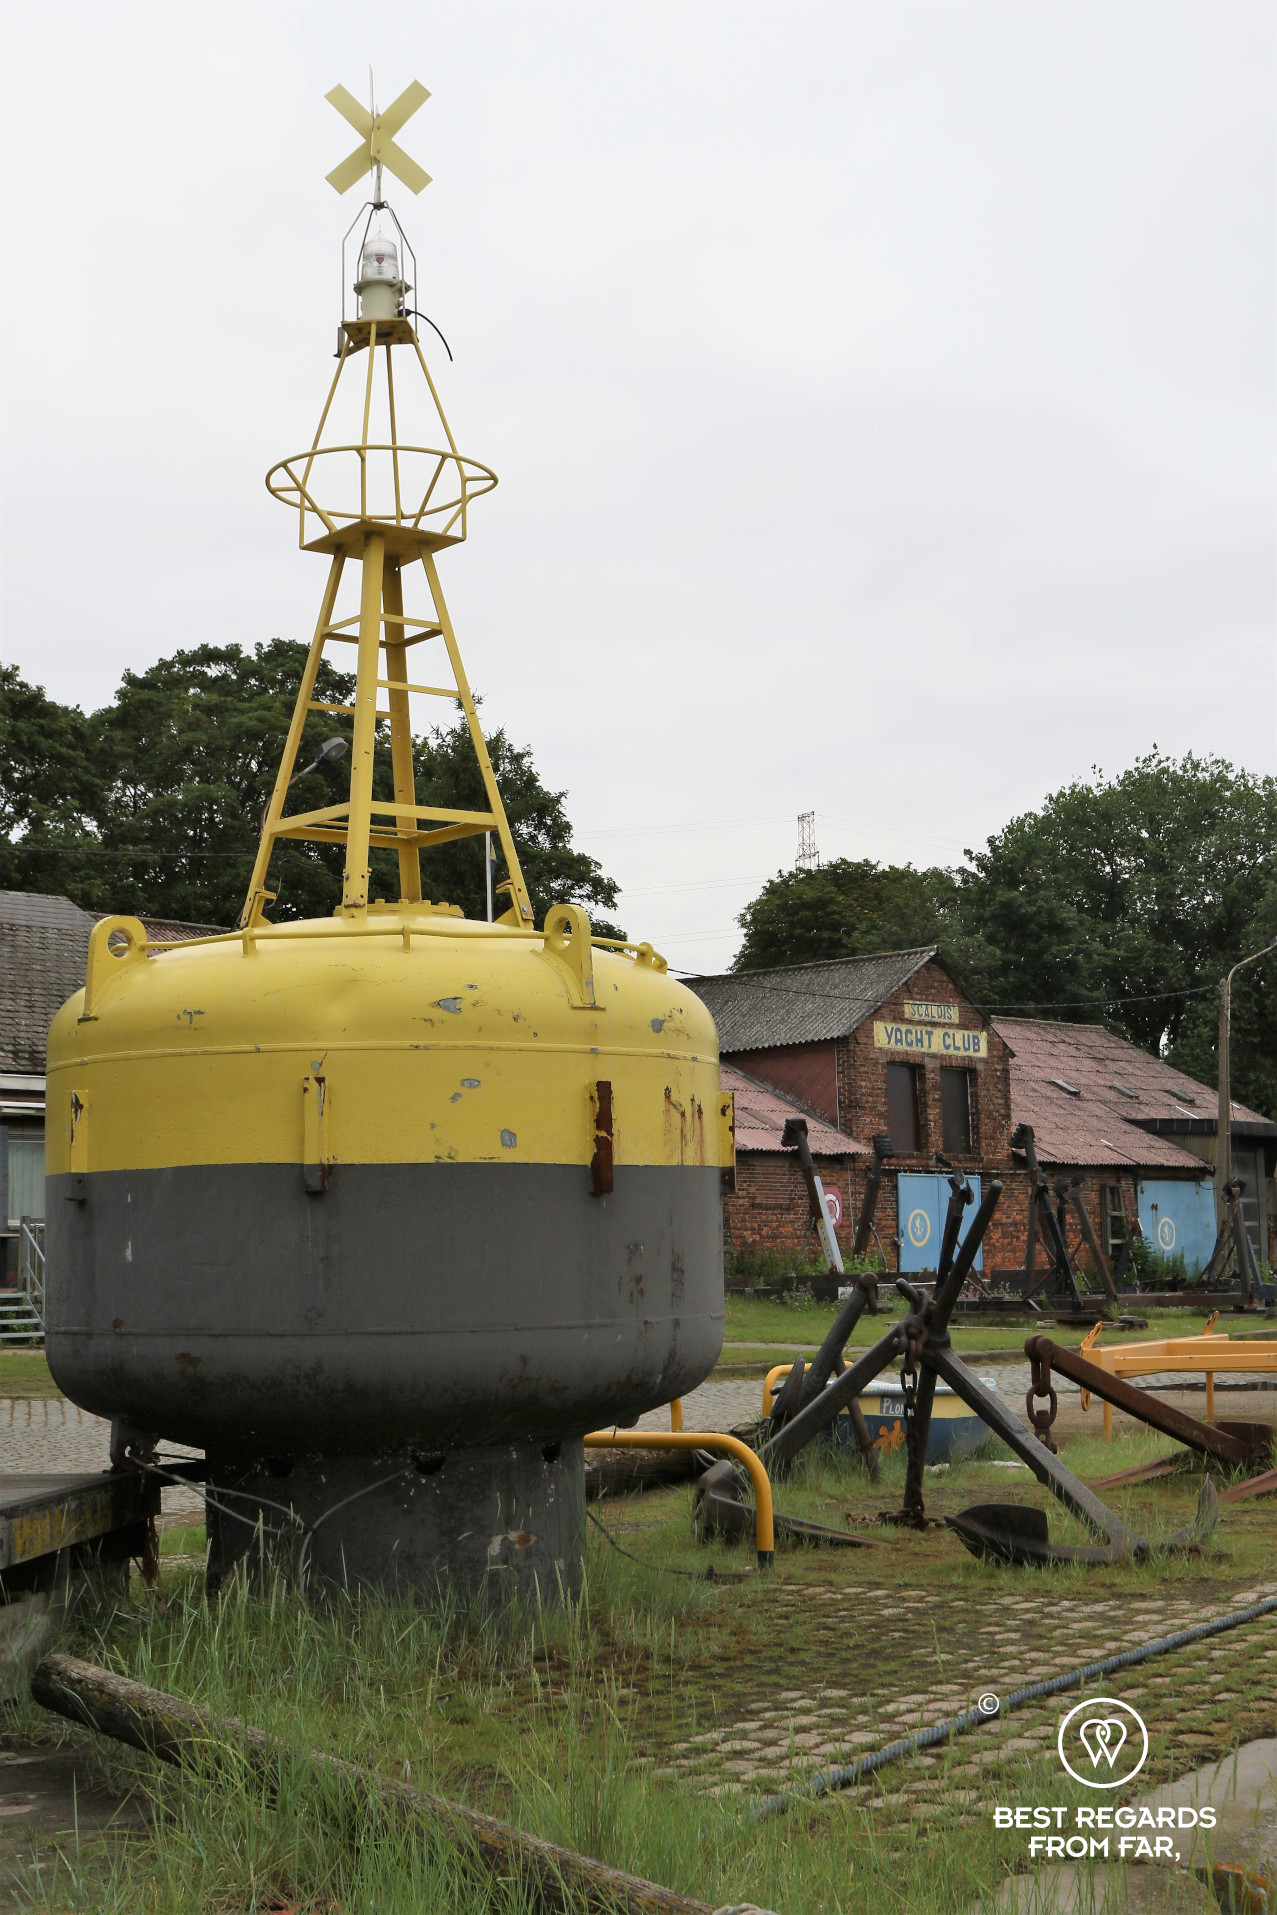 Yacht club in Lillo, Antwerp, Belgium, with a yellow buoy